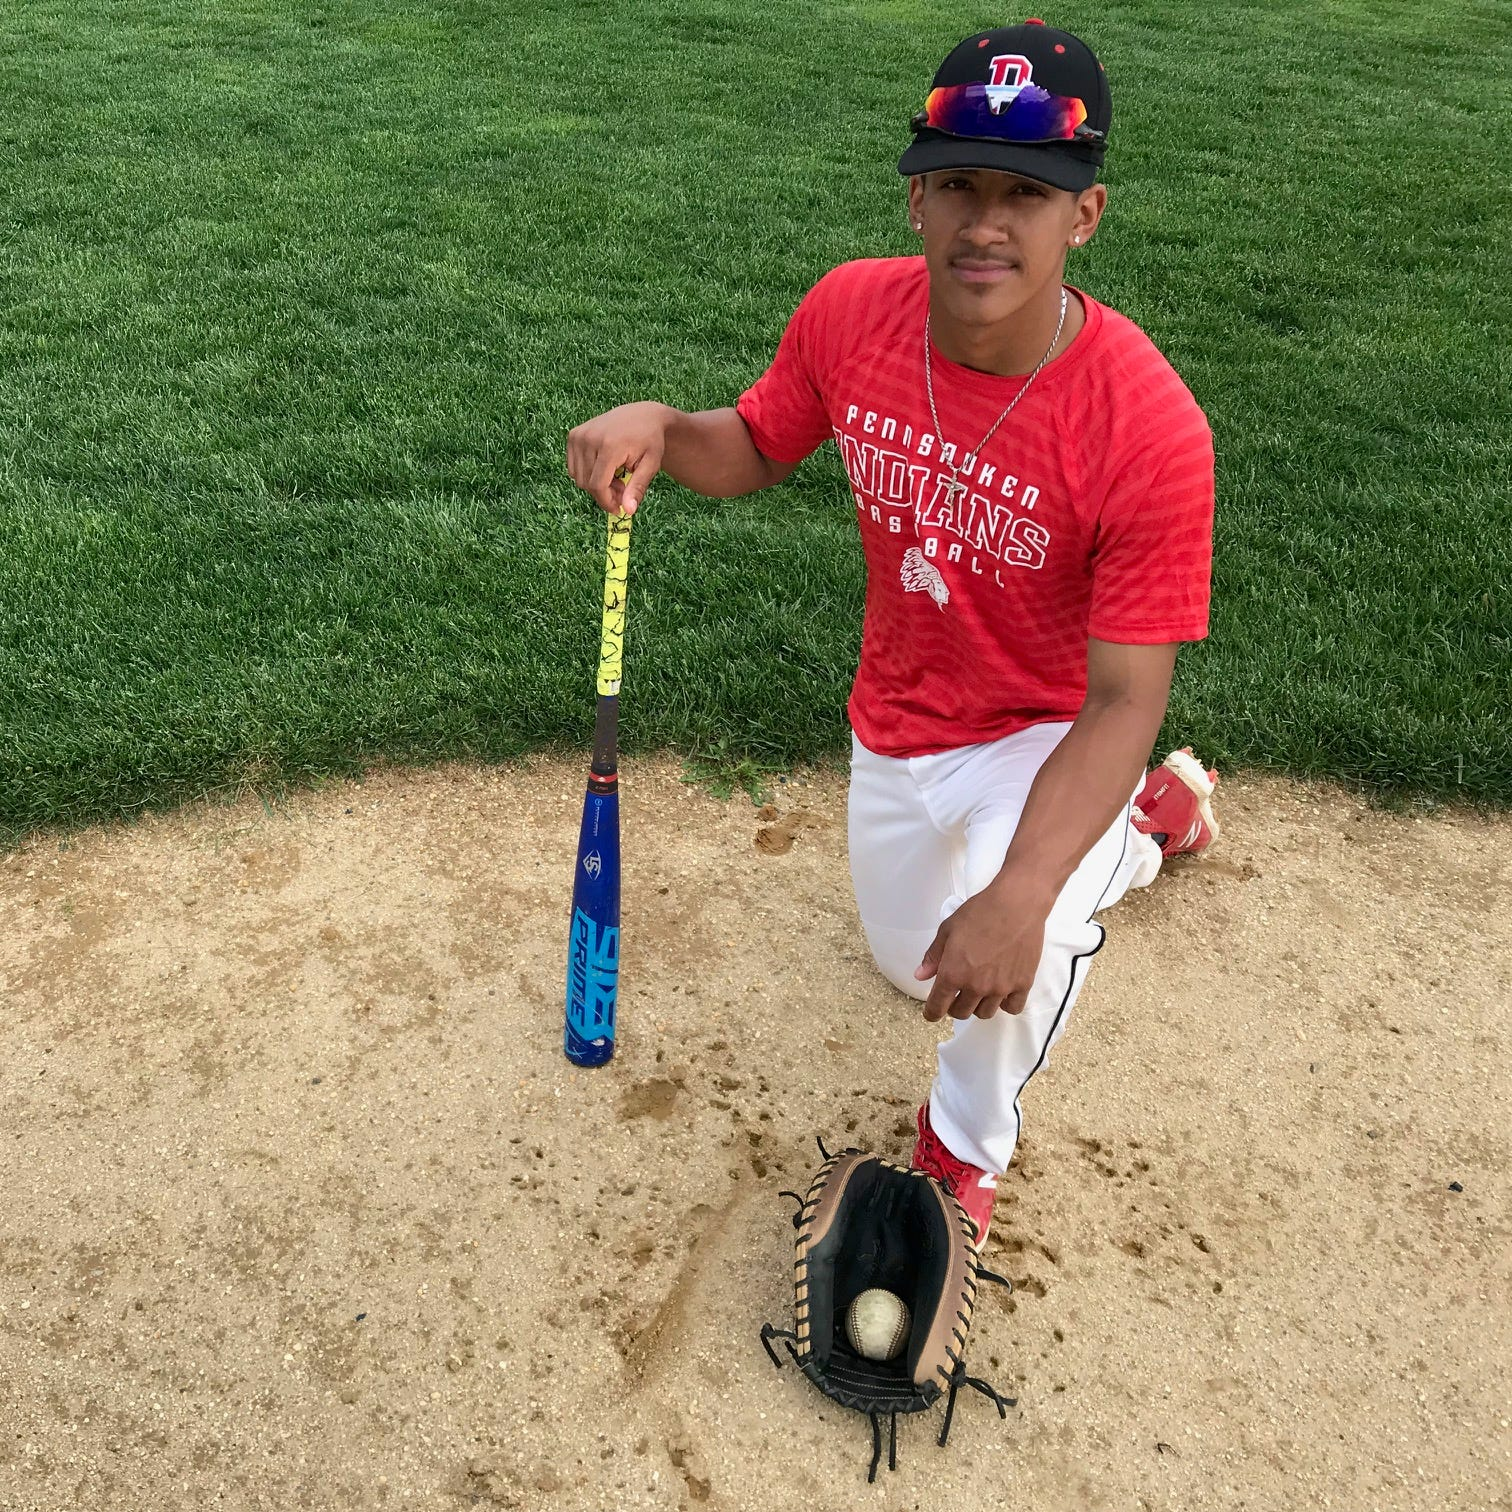 South Jersey baseball: Robby Barrientos propels Pennsauken back into spotlight